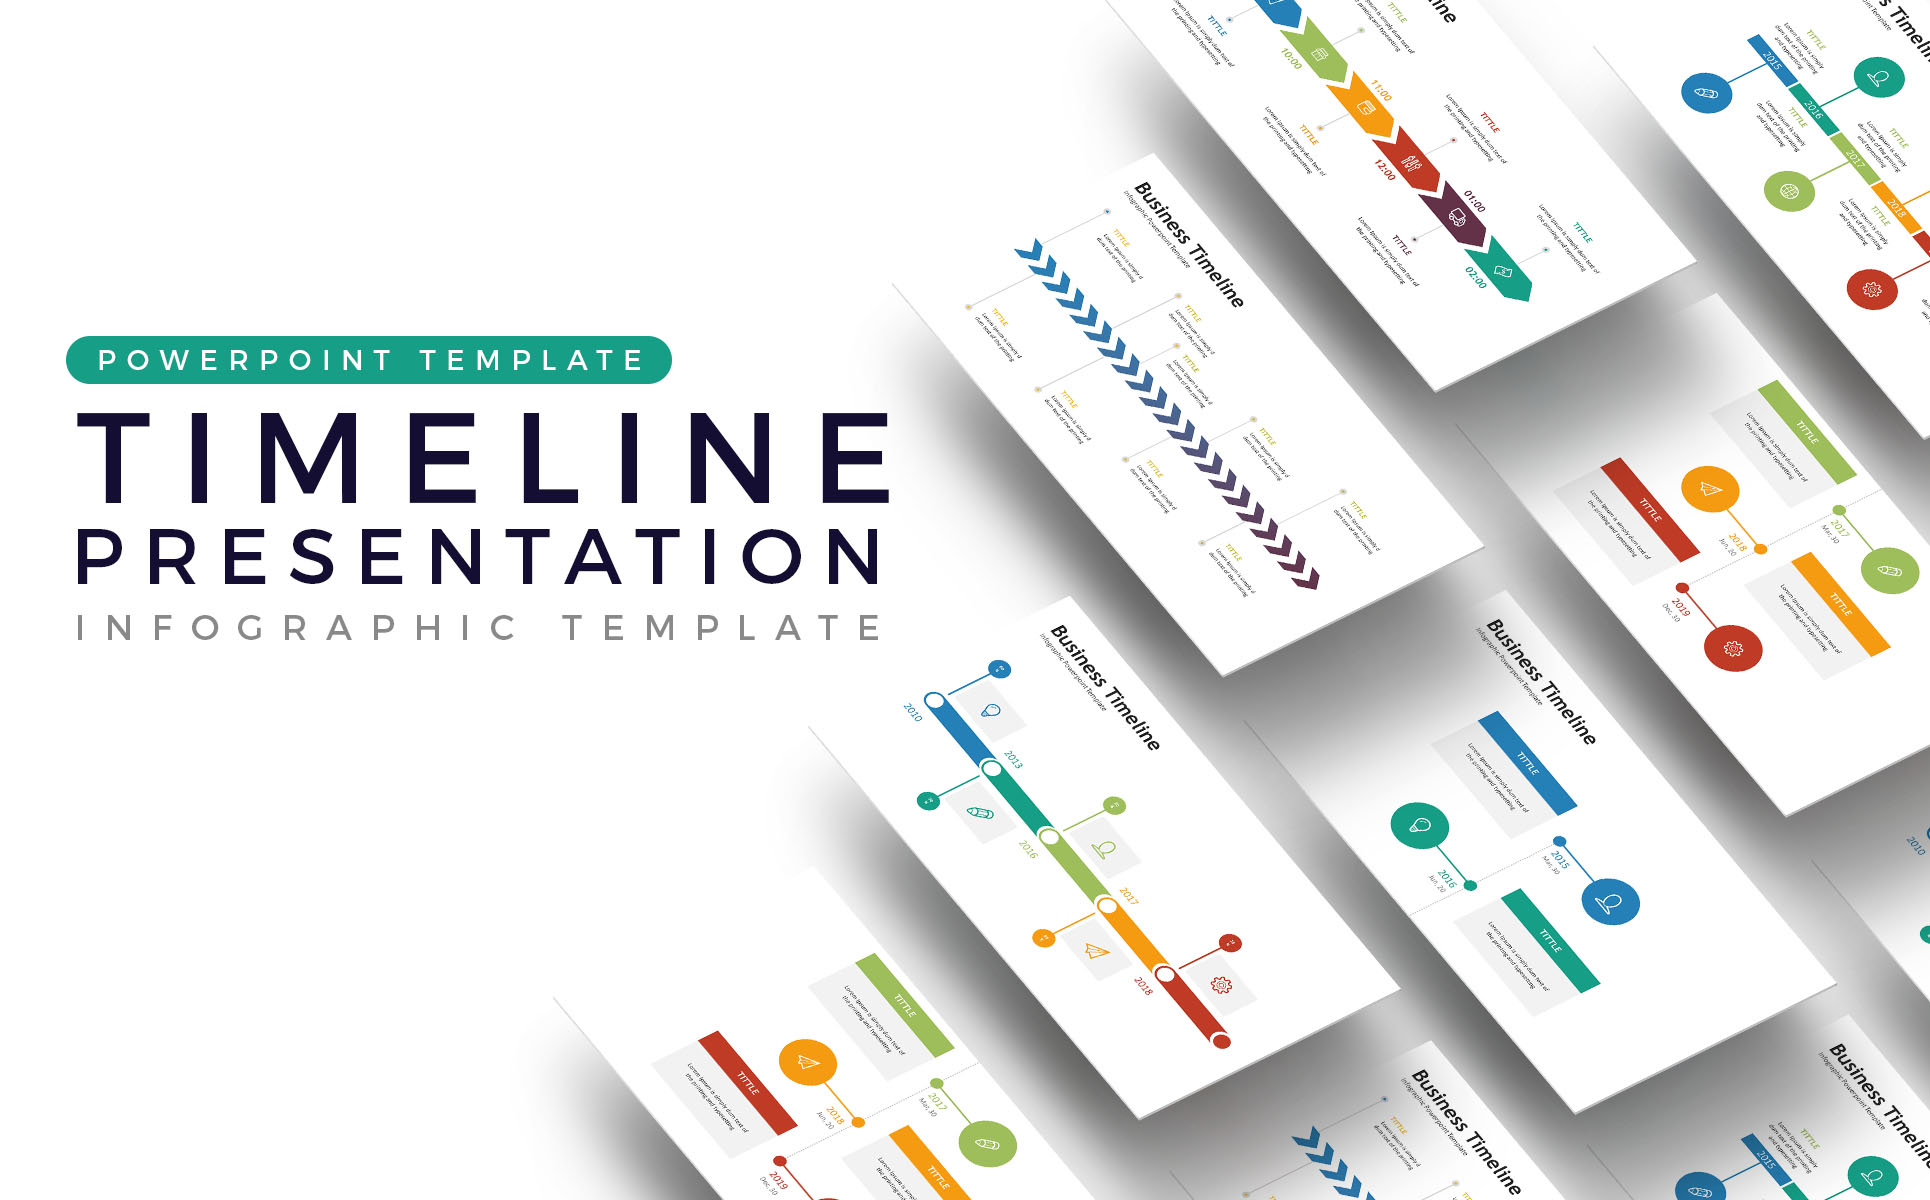 Timeline  - Infographic Presentation PowerPoint Template